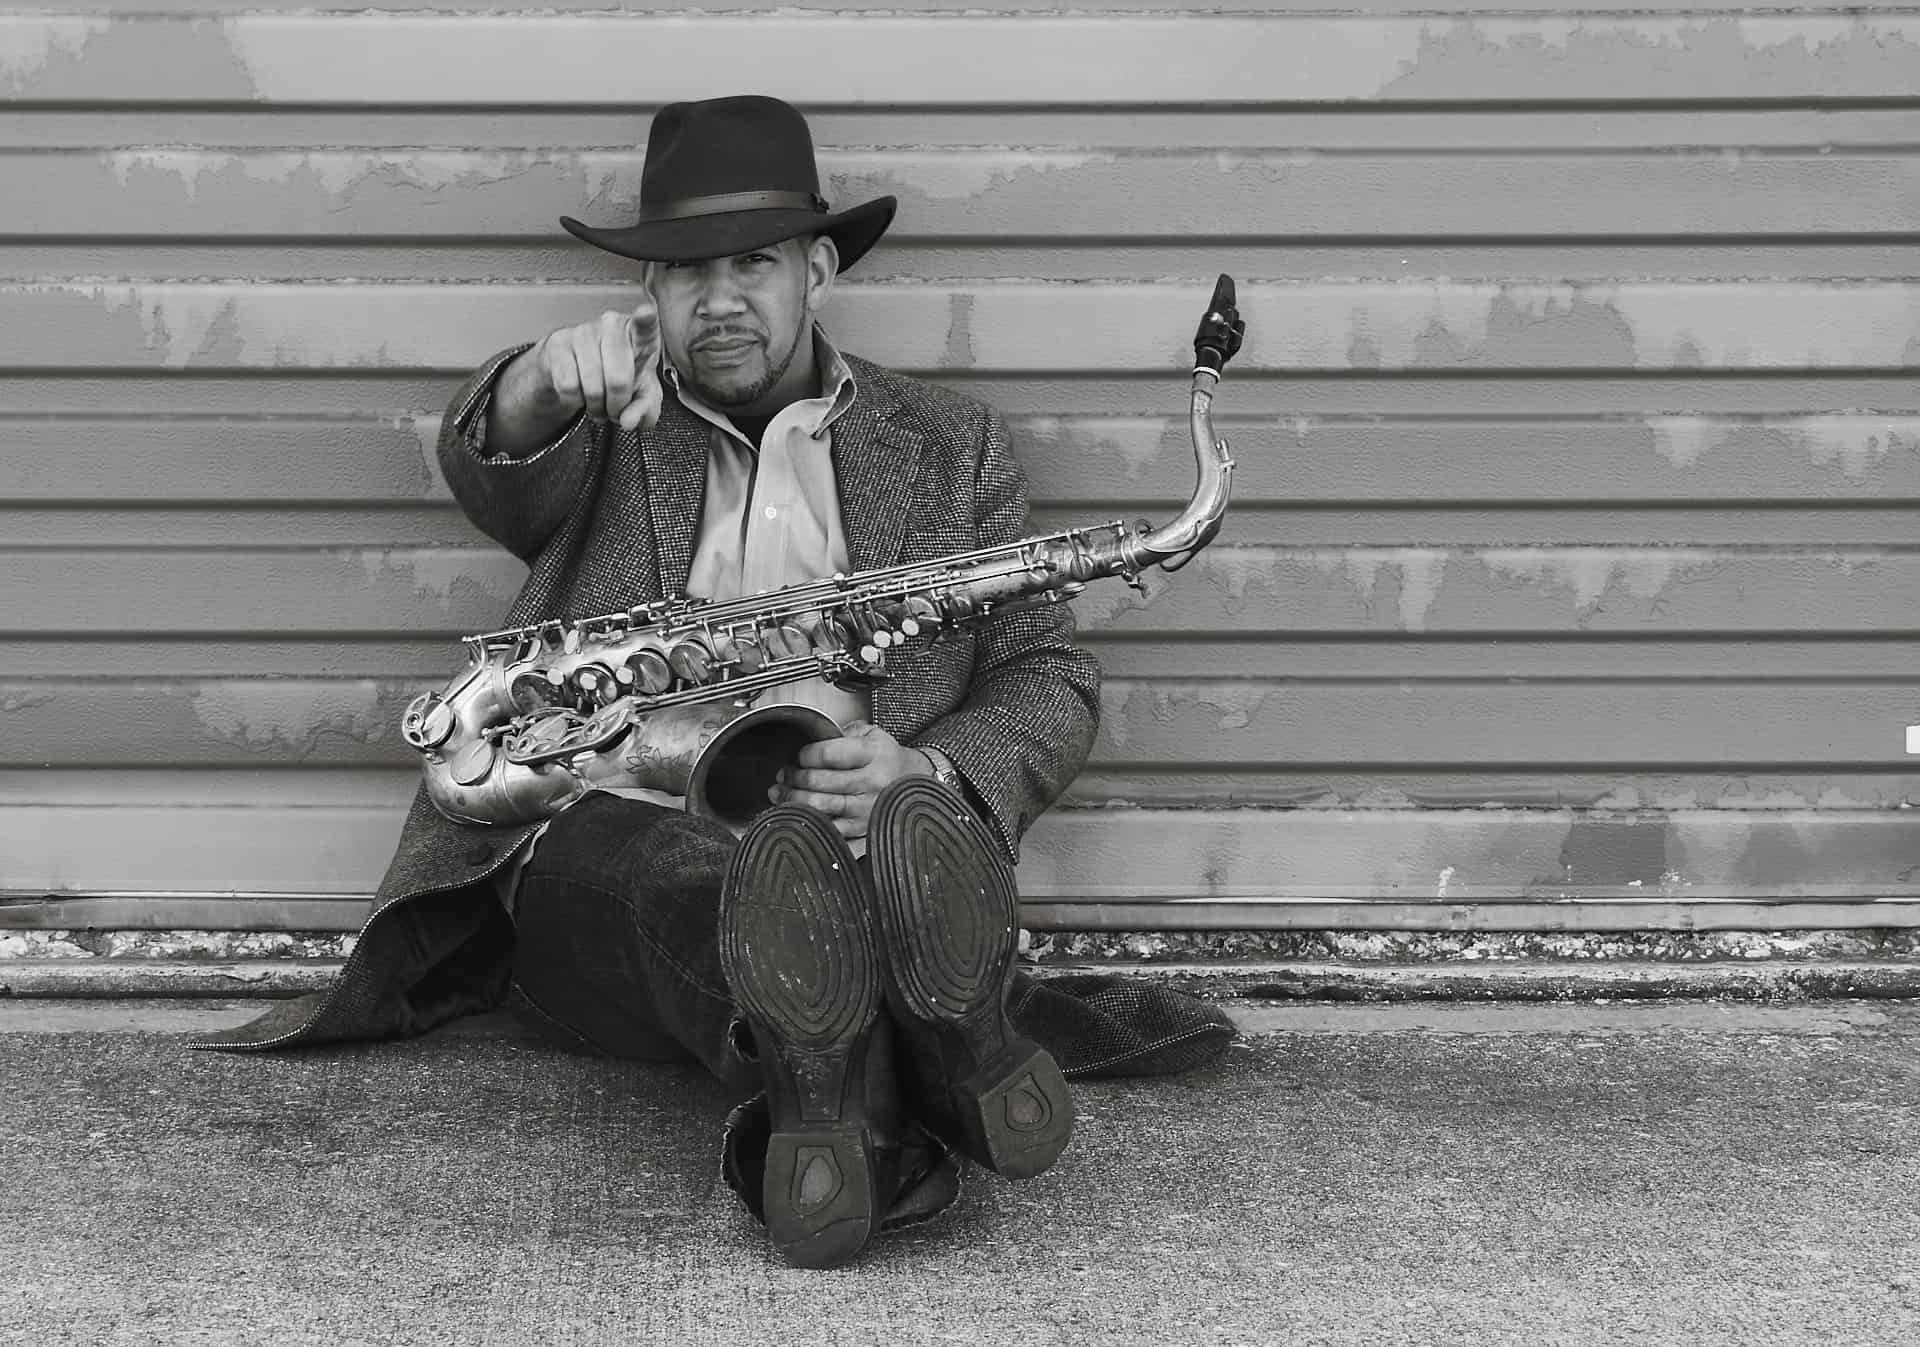 Saxophone player sitting on ground